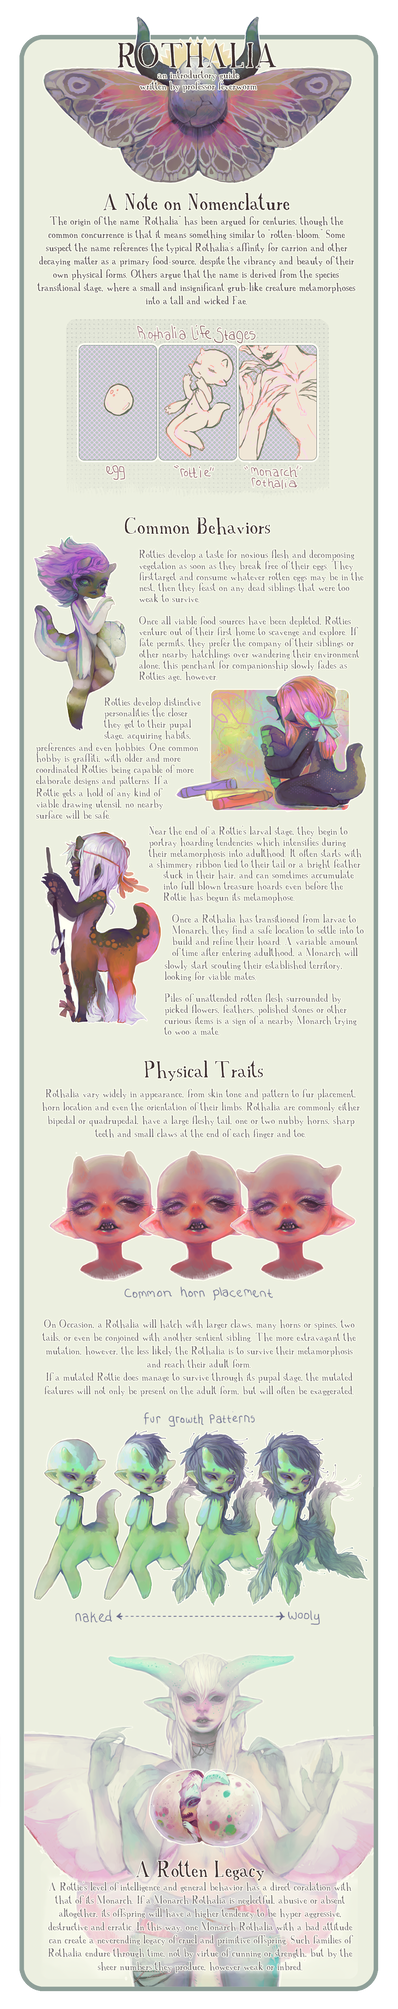 rothalia introductory guide by Chaotic-Muffin